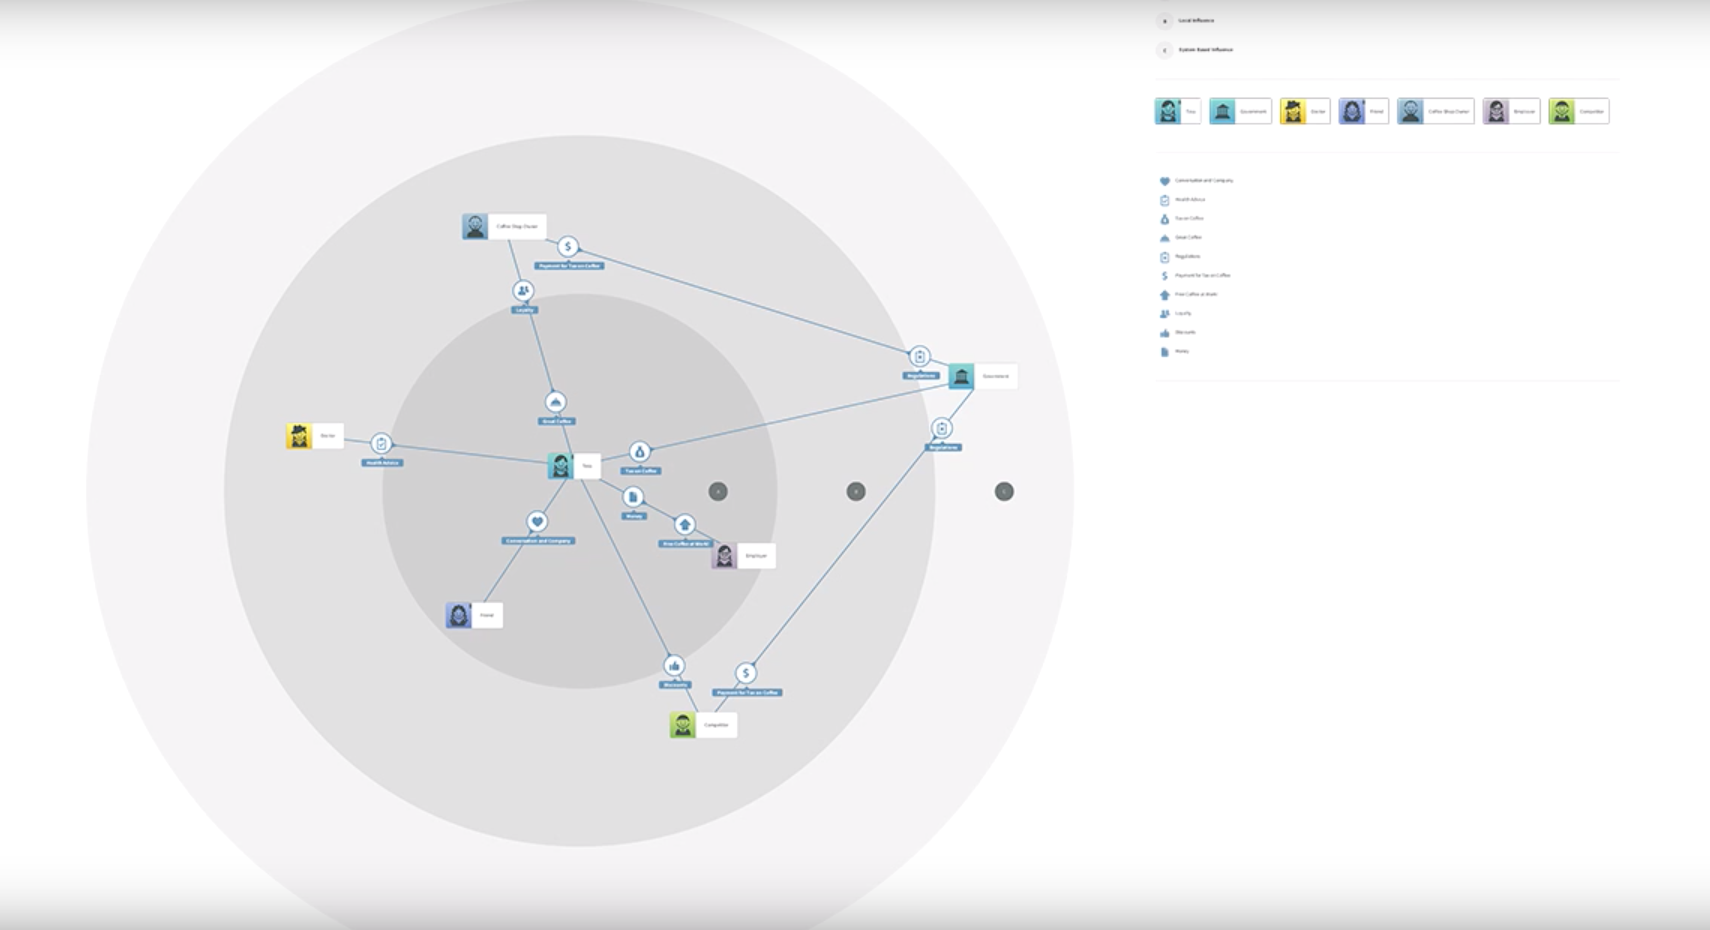 stakeholder map in smaply